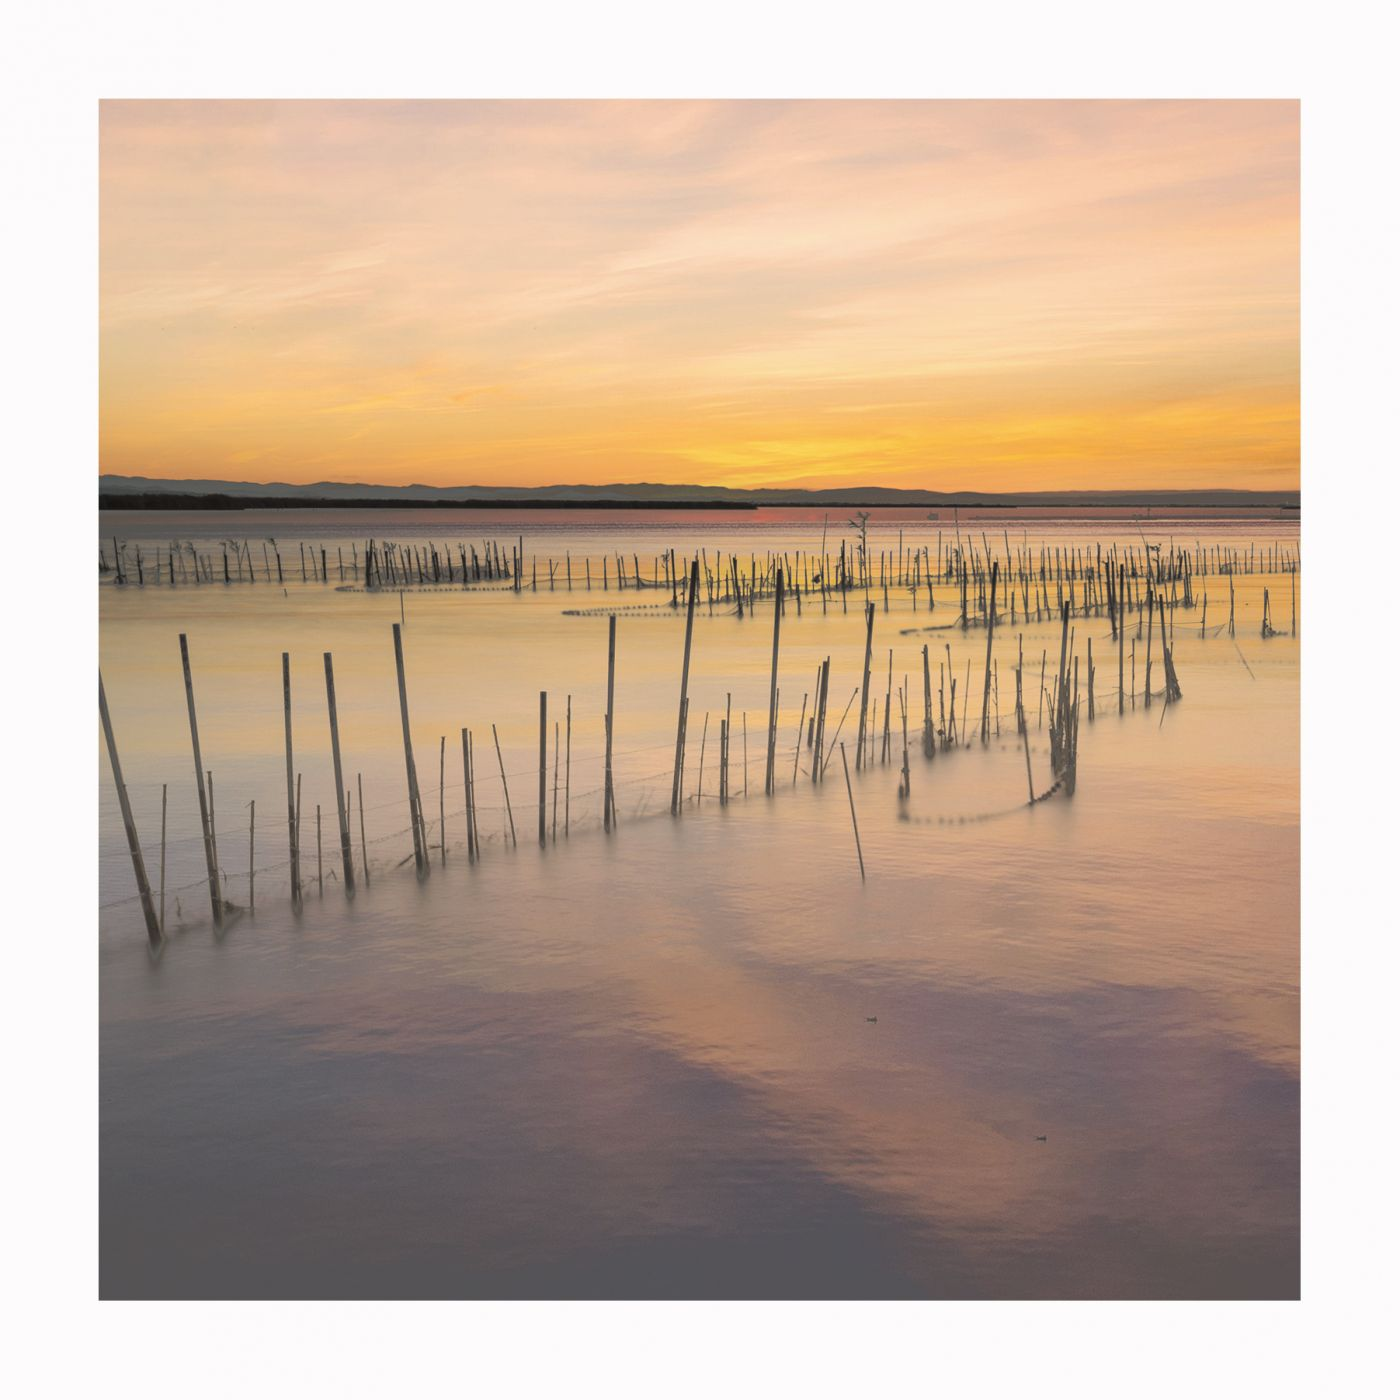 Sunset at the Natural Park of Albufera, Valencia, Spain